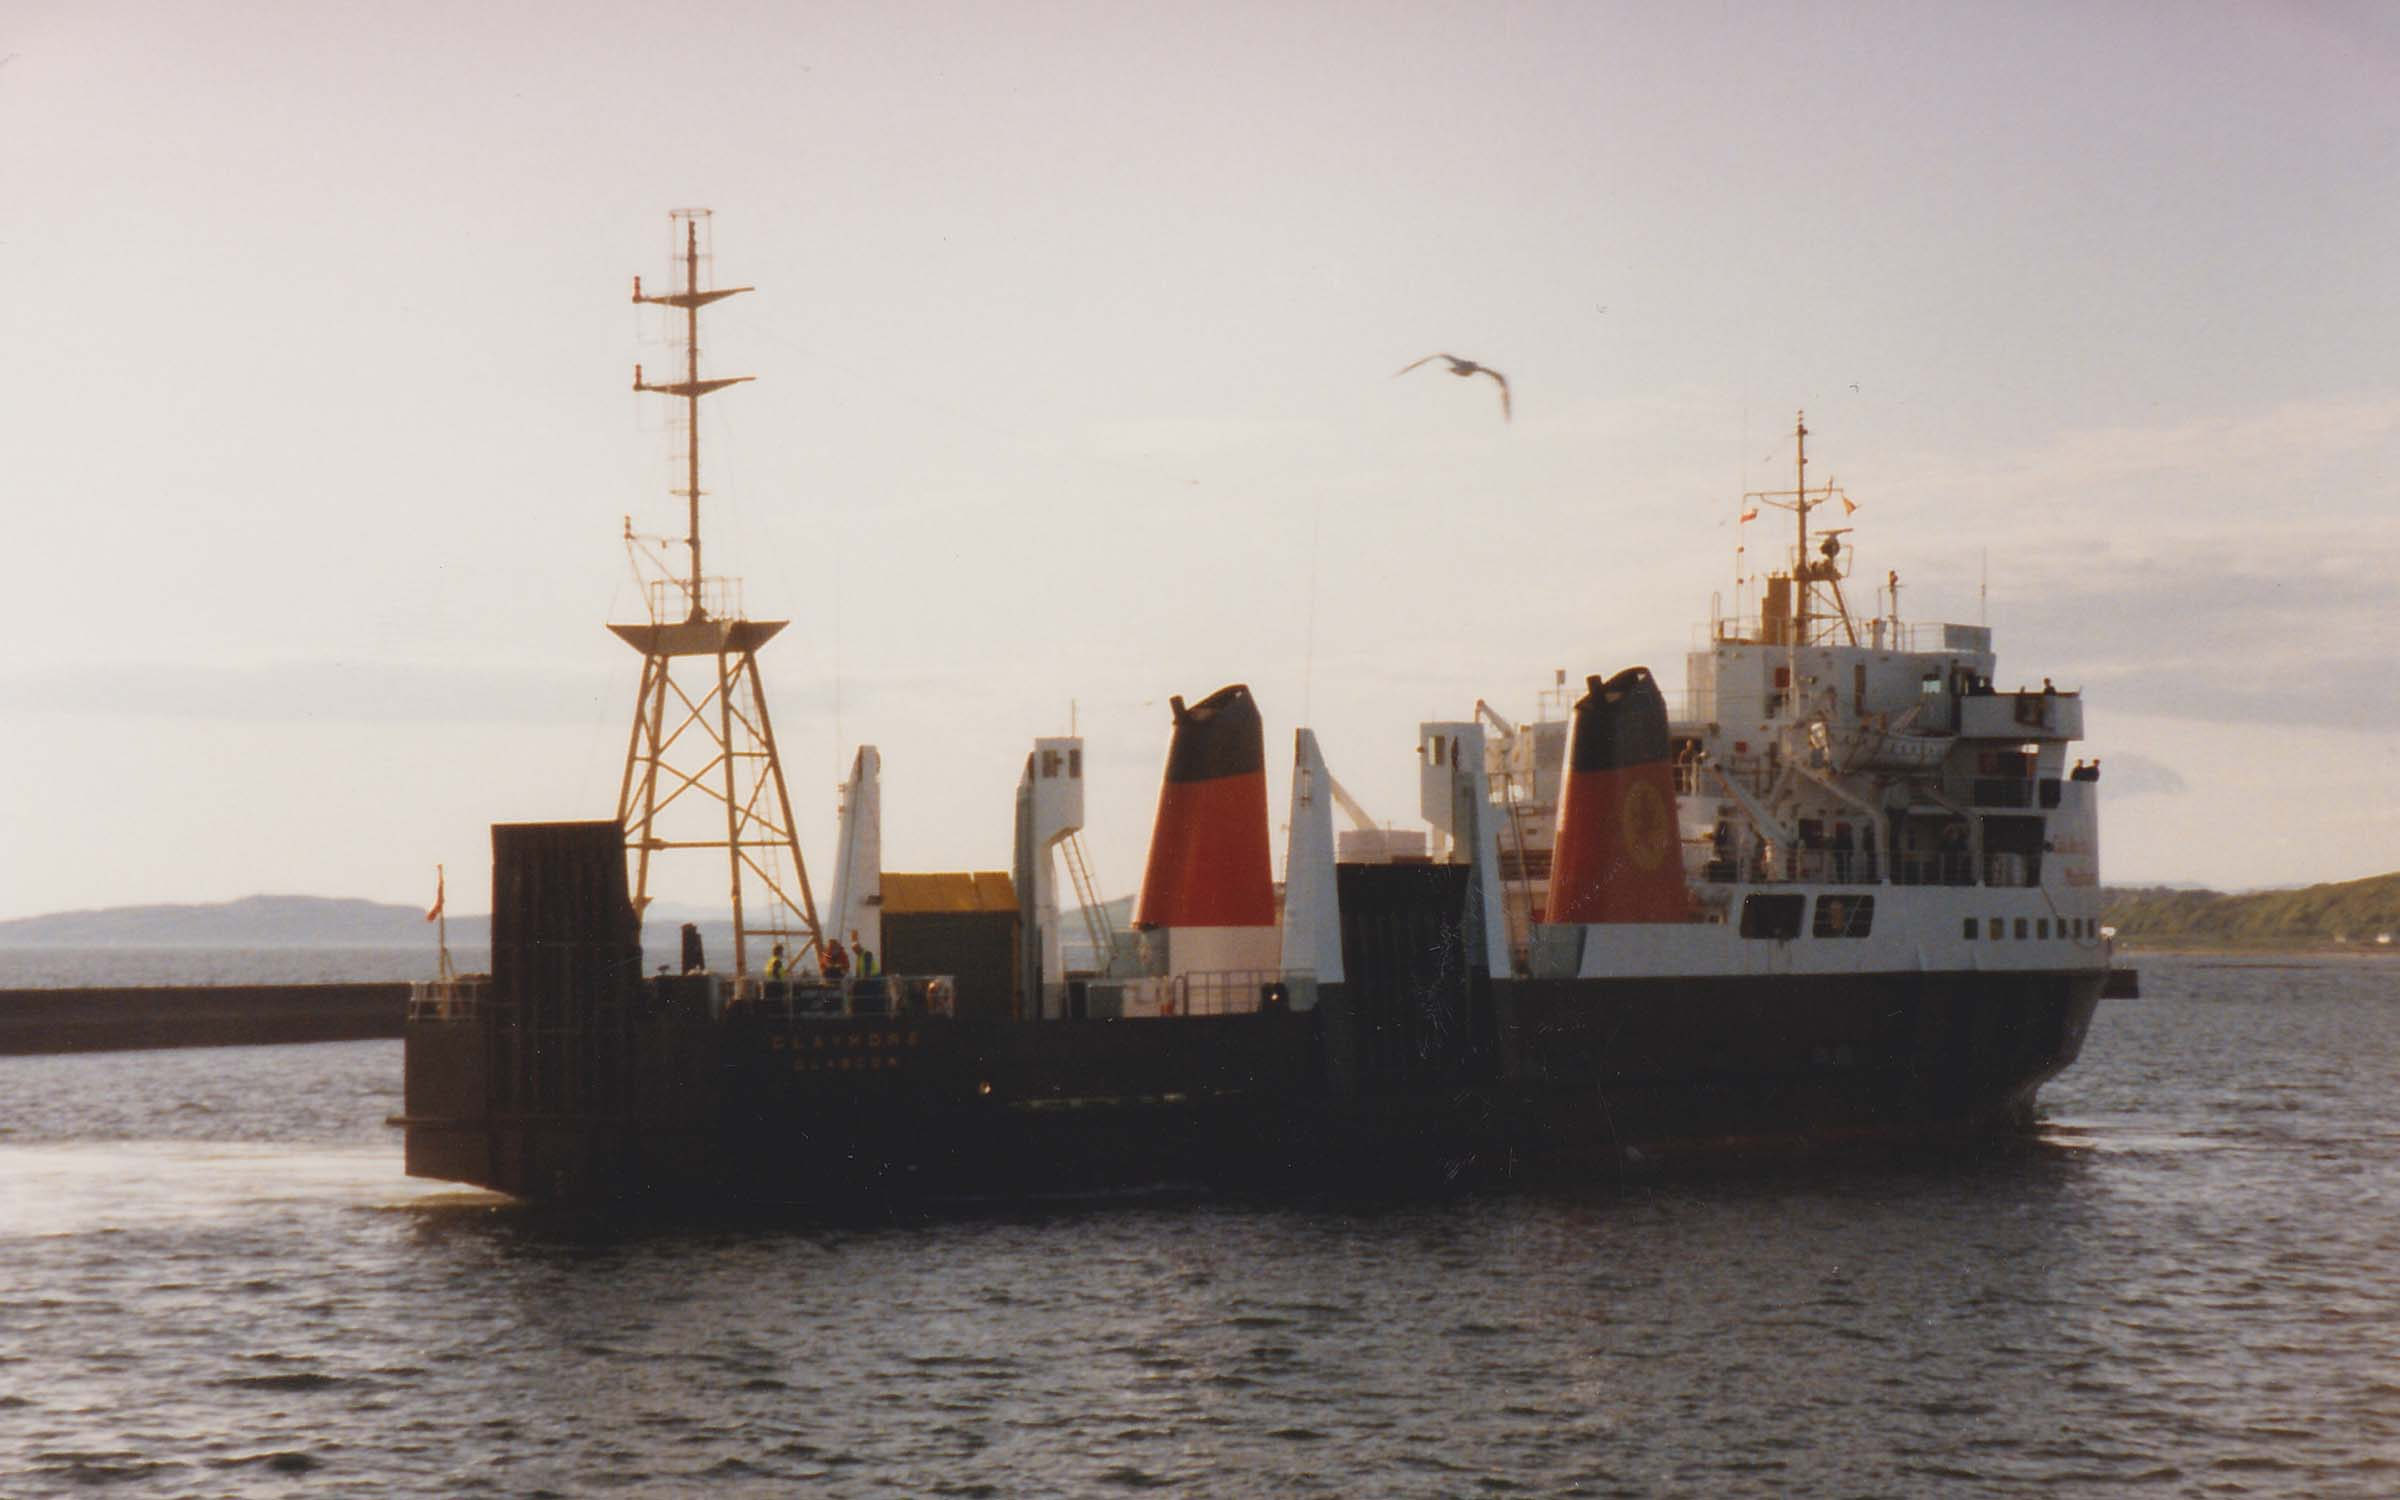 Claymore arriving in Ardrossan (Ships of CalMac)